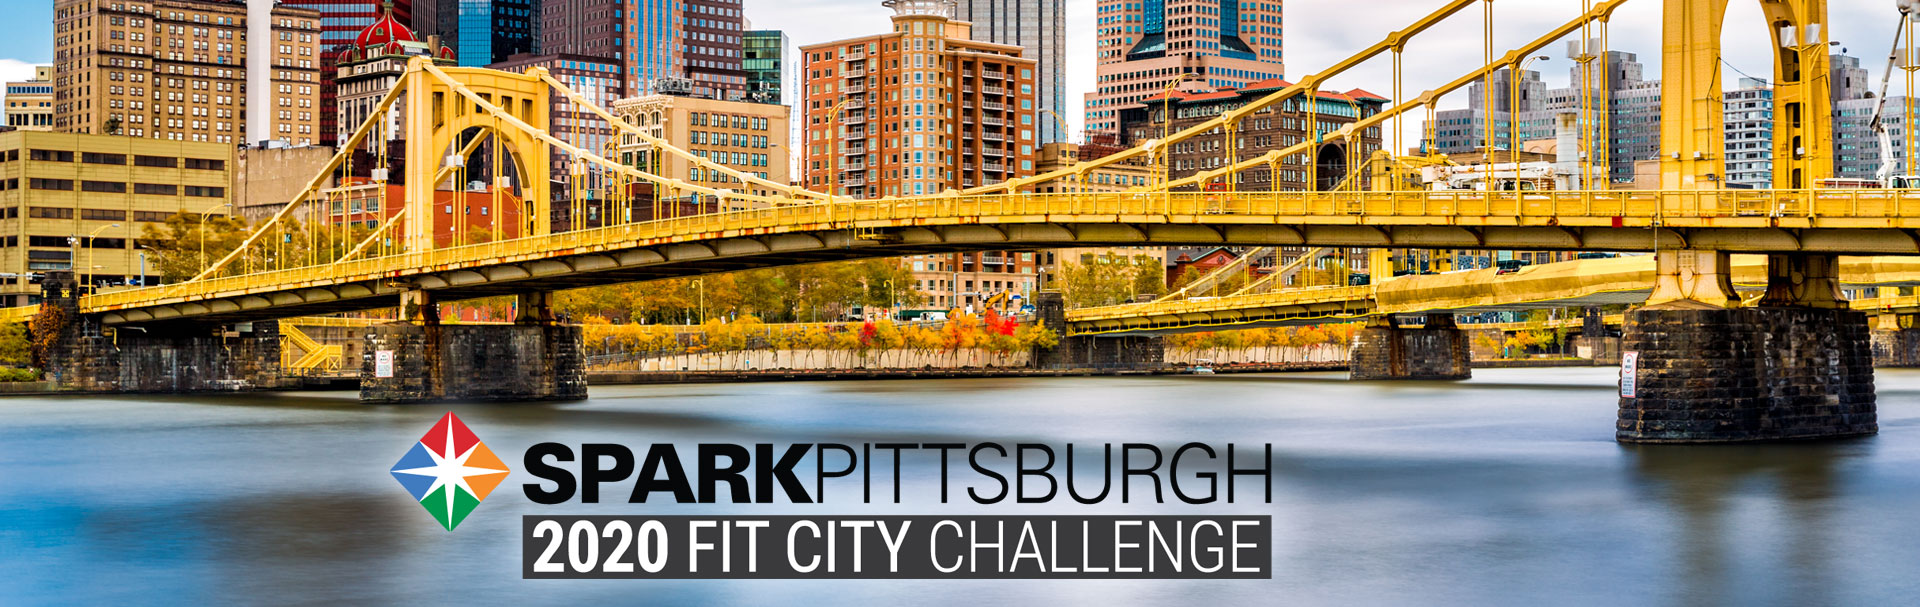 SPARK Pittsburgh 2020 Fit City Challenge